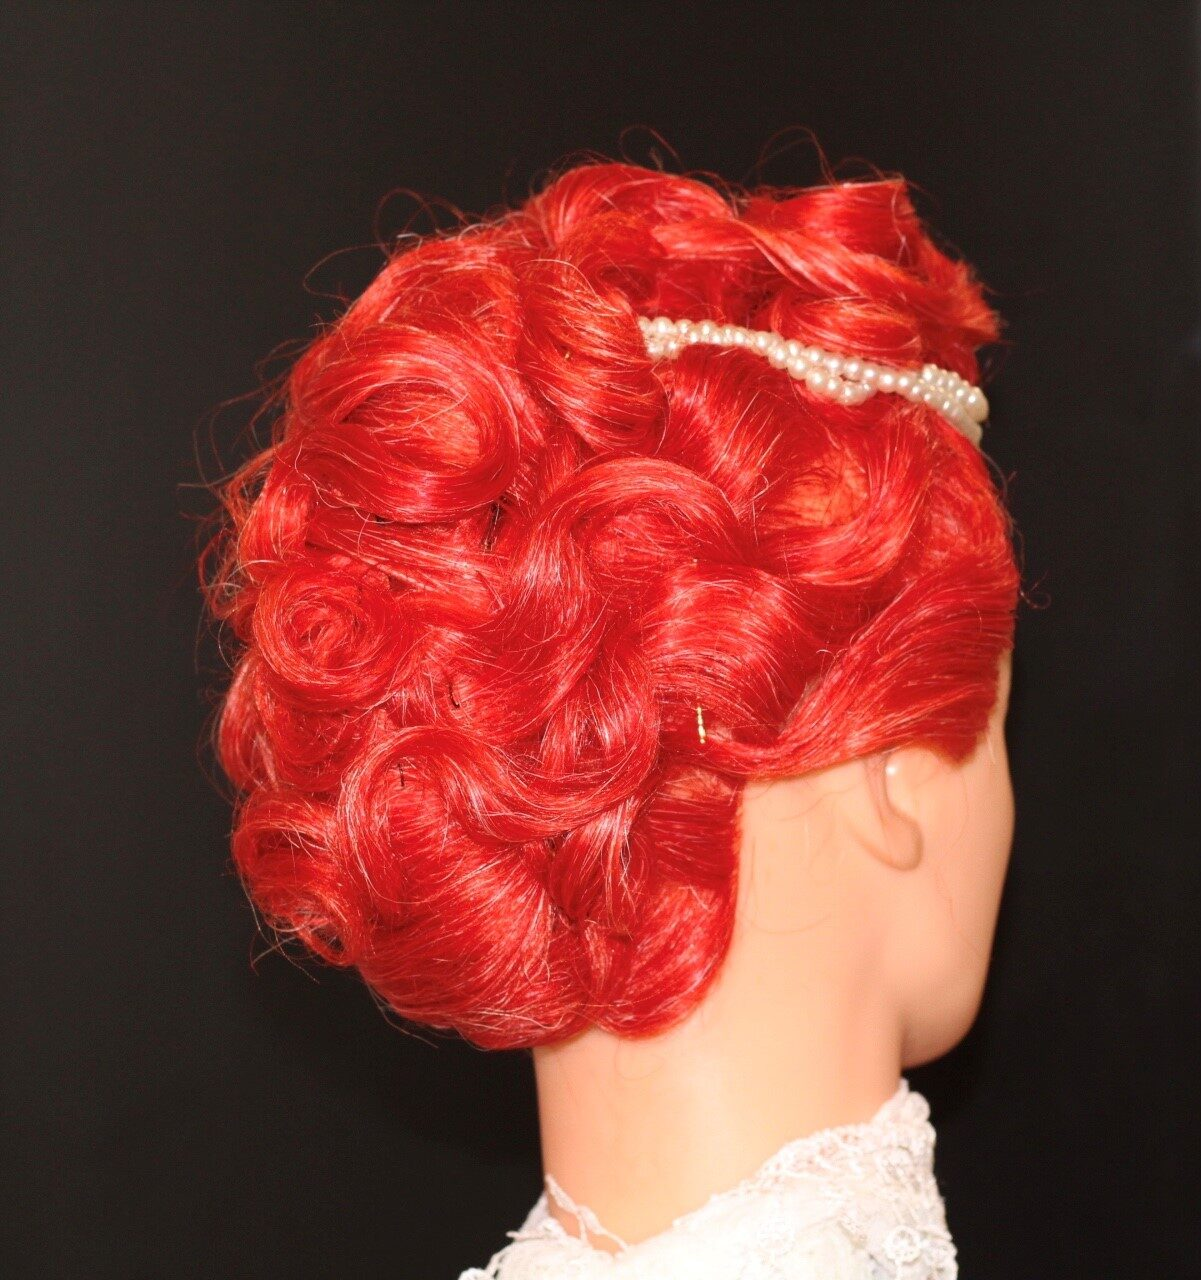 Tresham College Hair and Beauty students Concept Hair competition